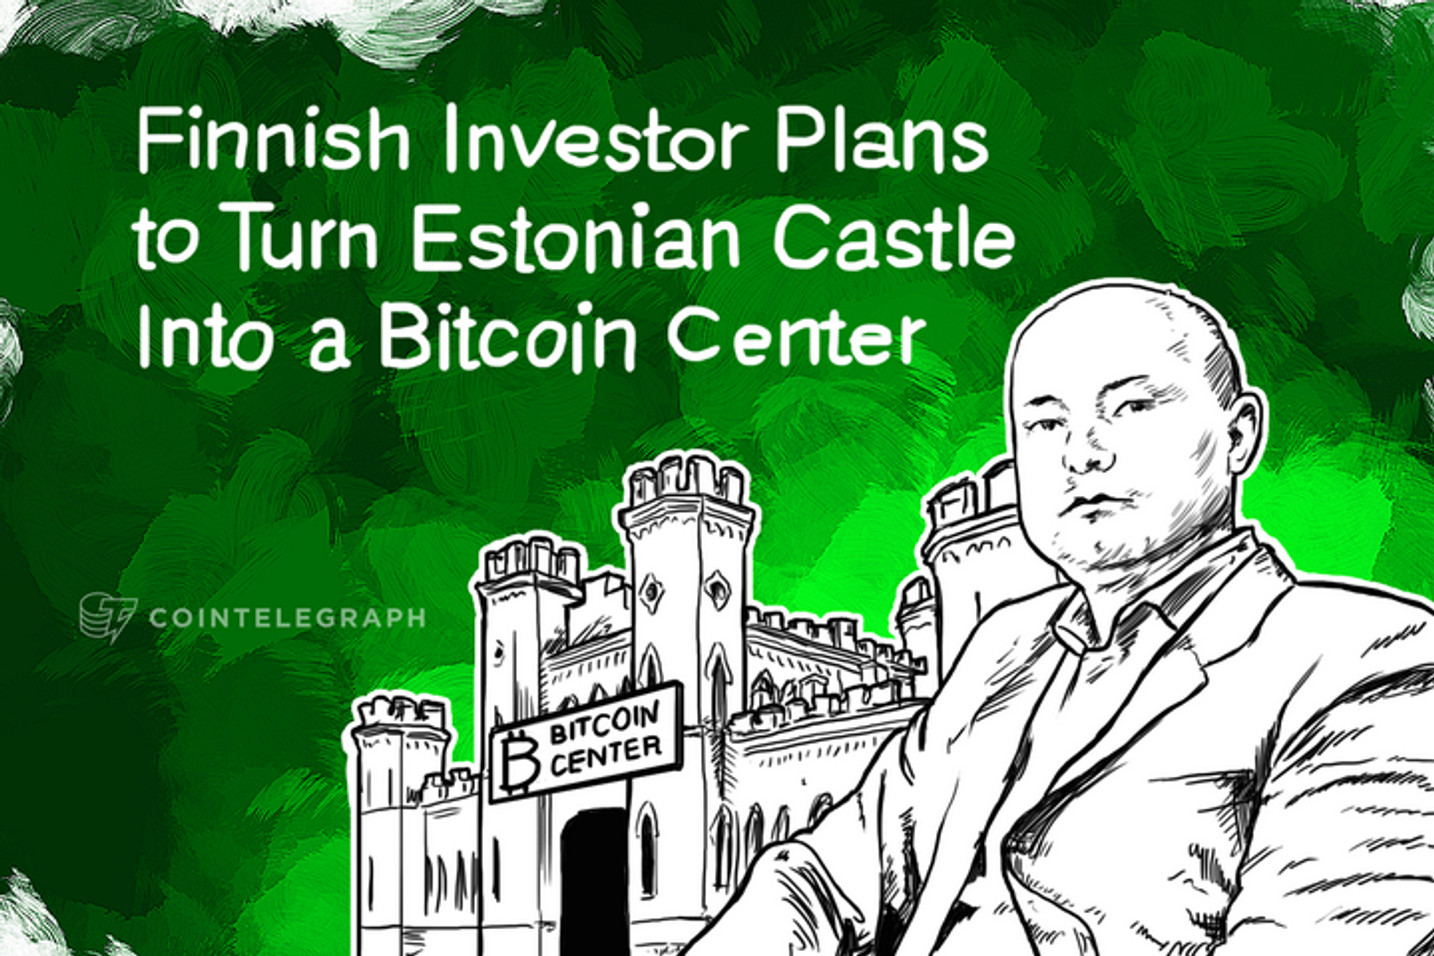 Finnish Investor Plans to Turn Estonian Castle Into a Bitcoin Center